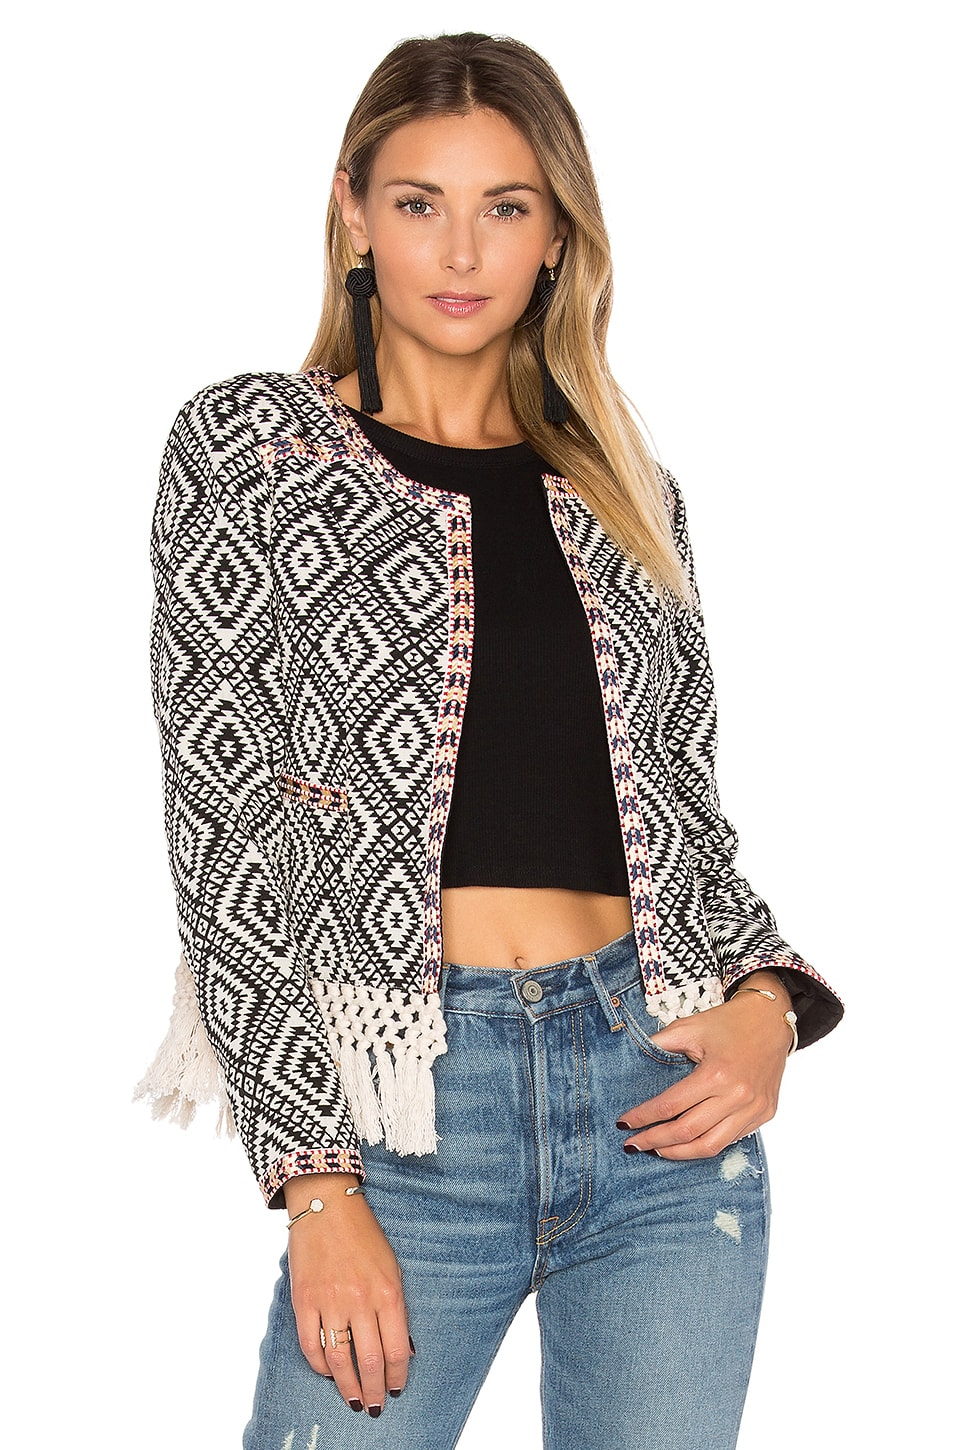 Santa Fe Jacket by Tularosa